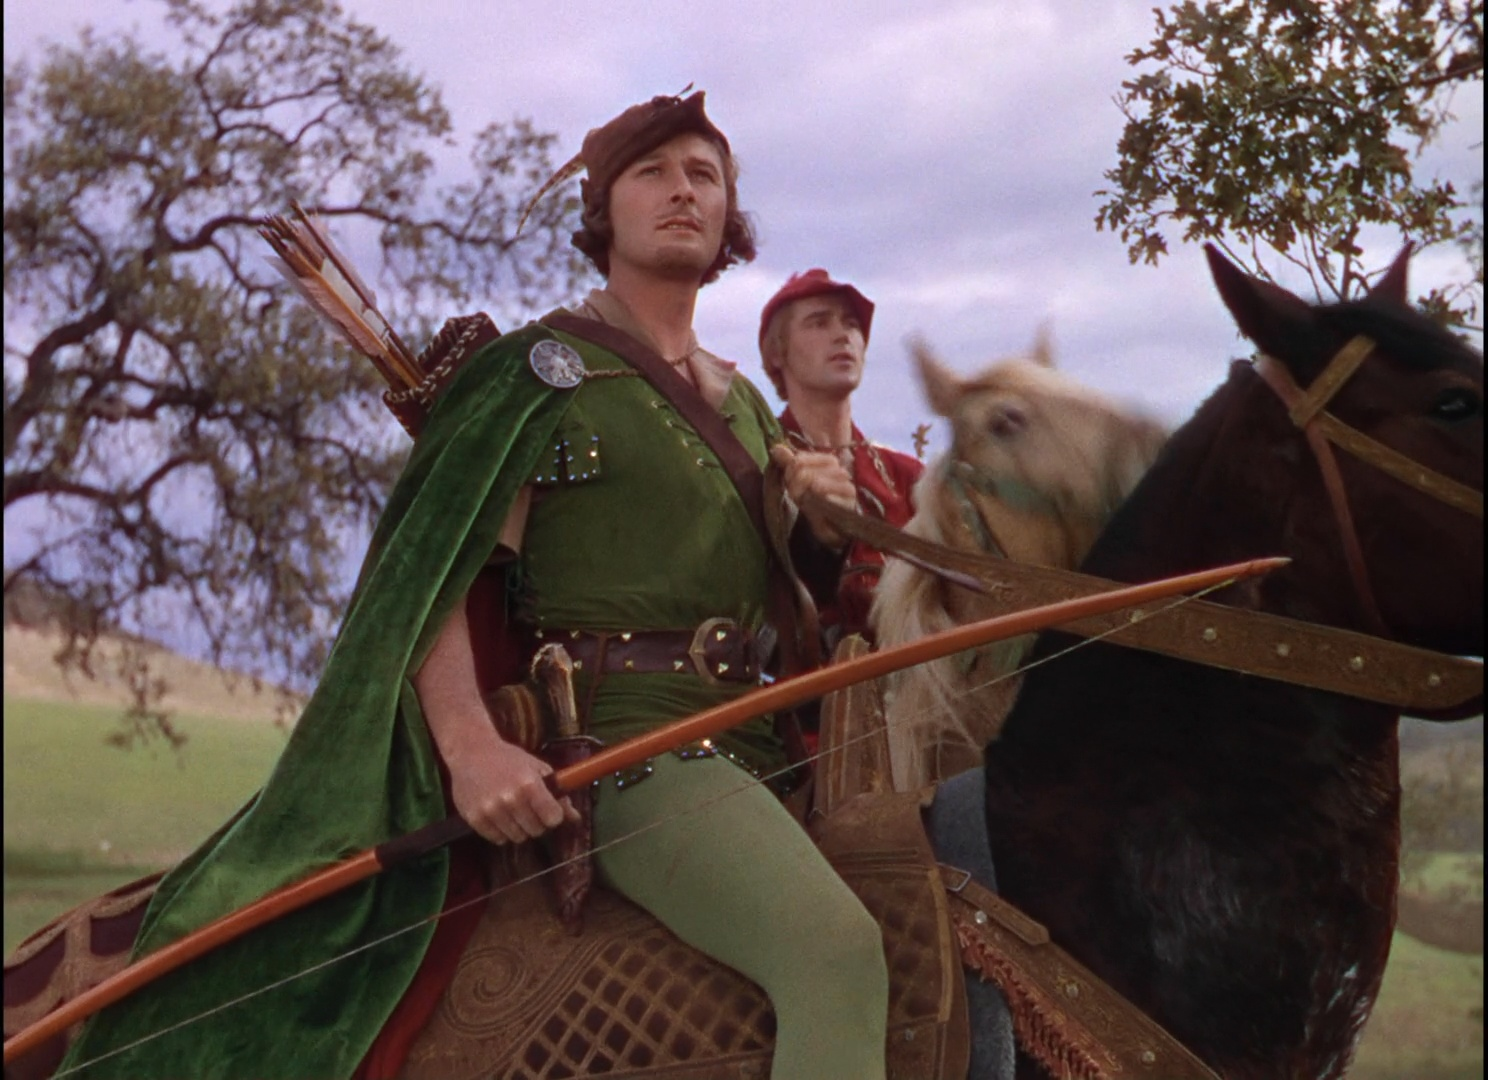 The film 'The Adventures of Robin Hood' was an early example of Technicolor.  Expensive and complicated , it was quickly surpassed in usage by  Eastmancolor .However,Technicolor's process retains color better, and most films of this era we see today have been reprinted on Technicolor.